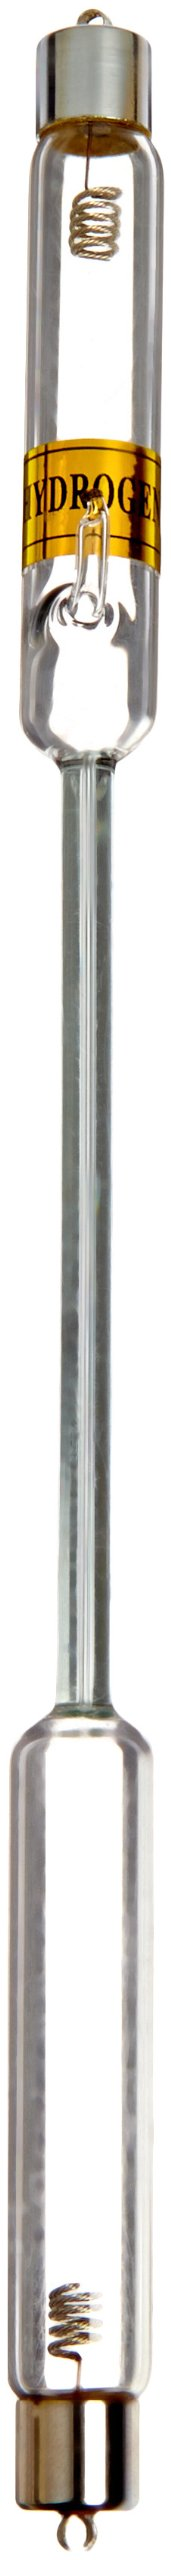 EISCO Premium Spectrum Tube, 26cm Height, Hydrogen (H) by EISCO